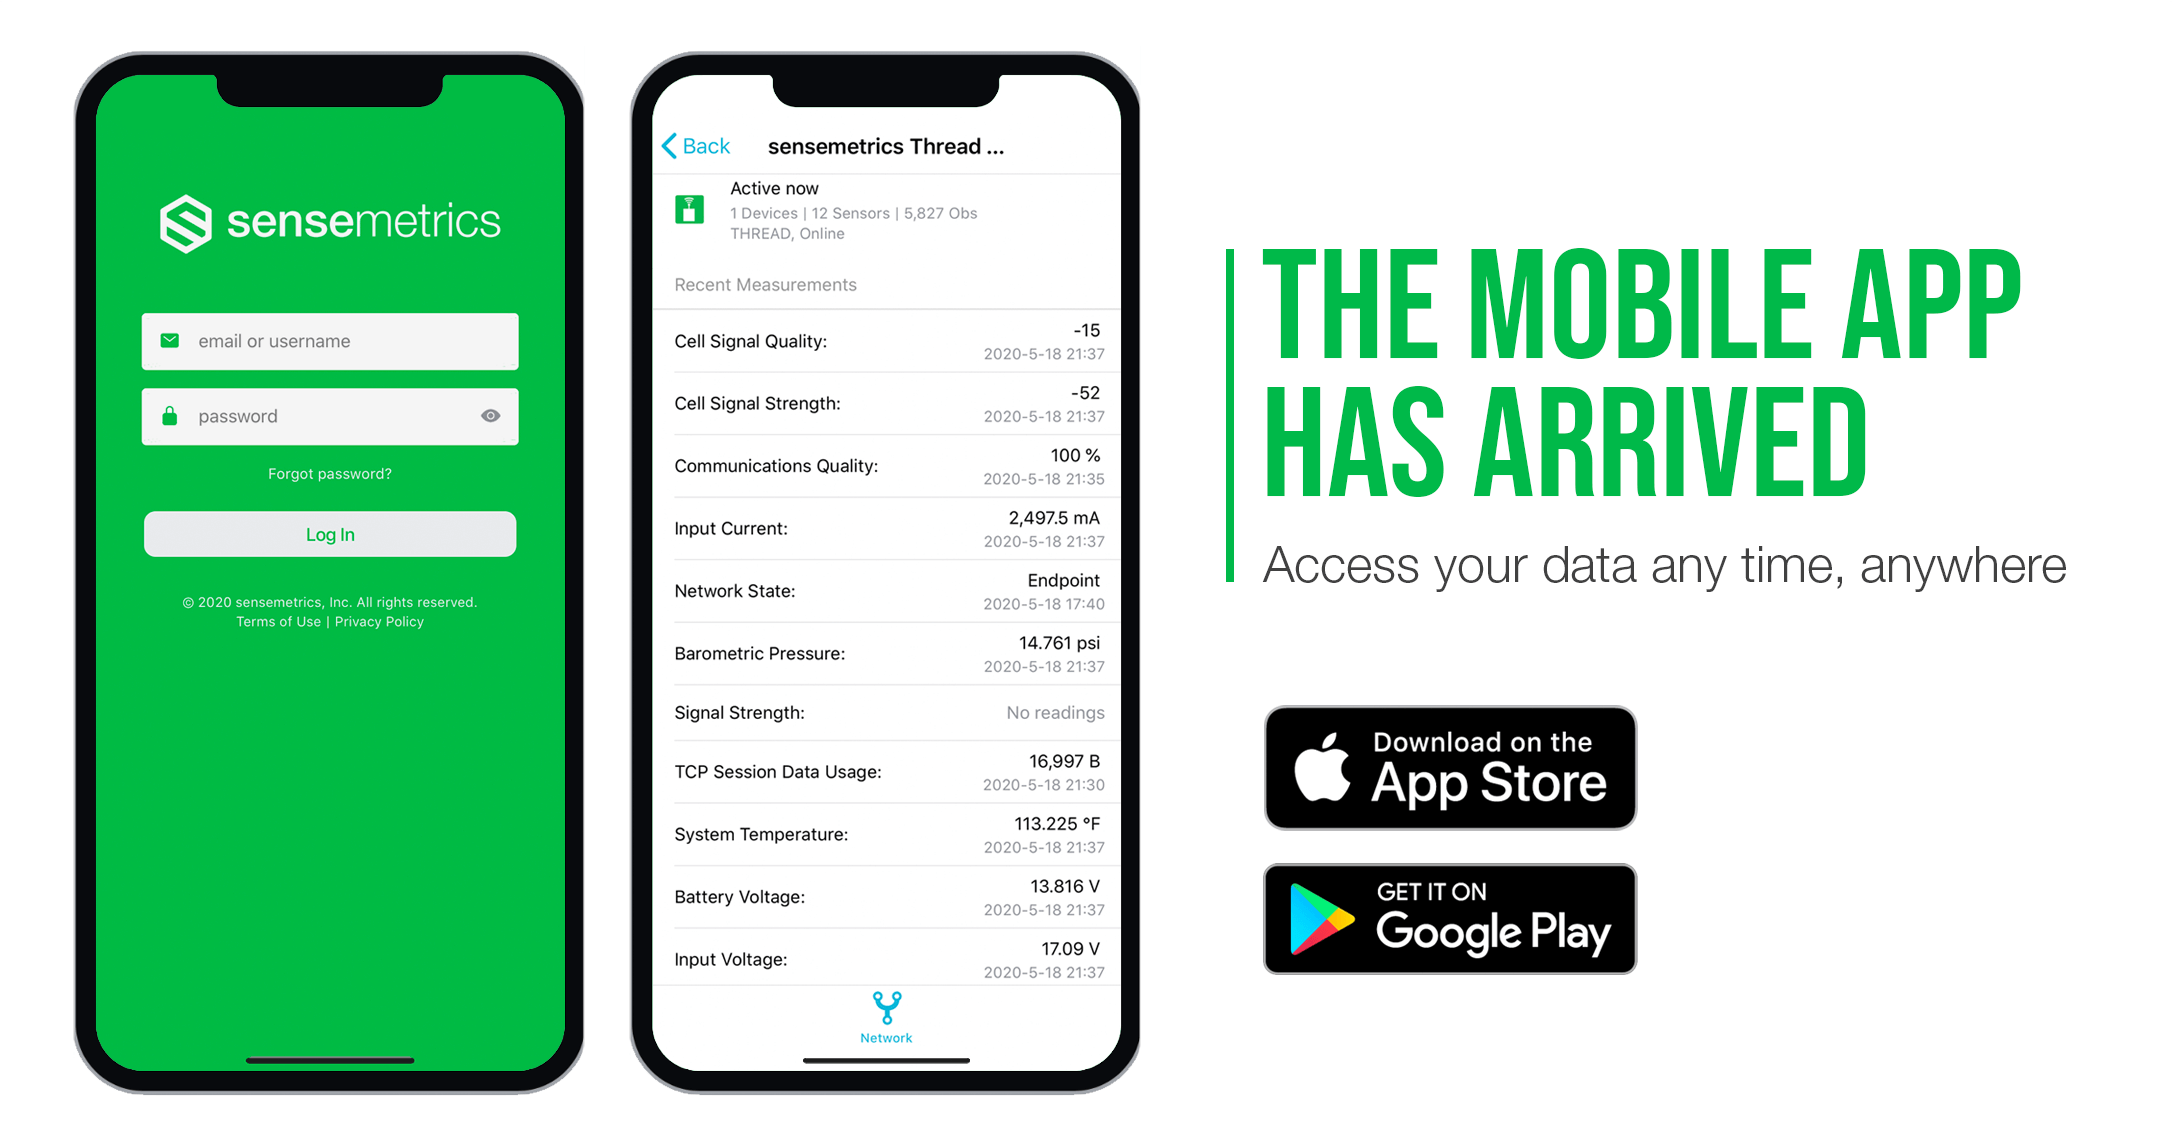 The Mobile App Has Arrived!